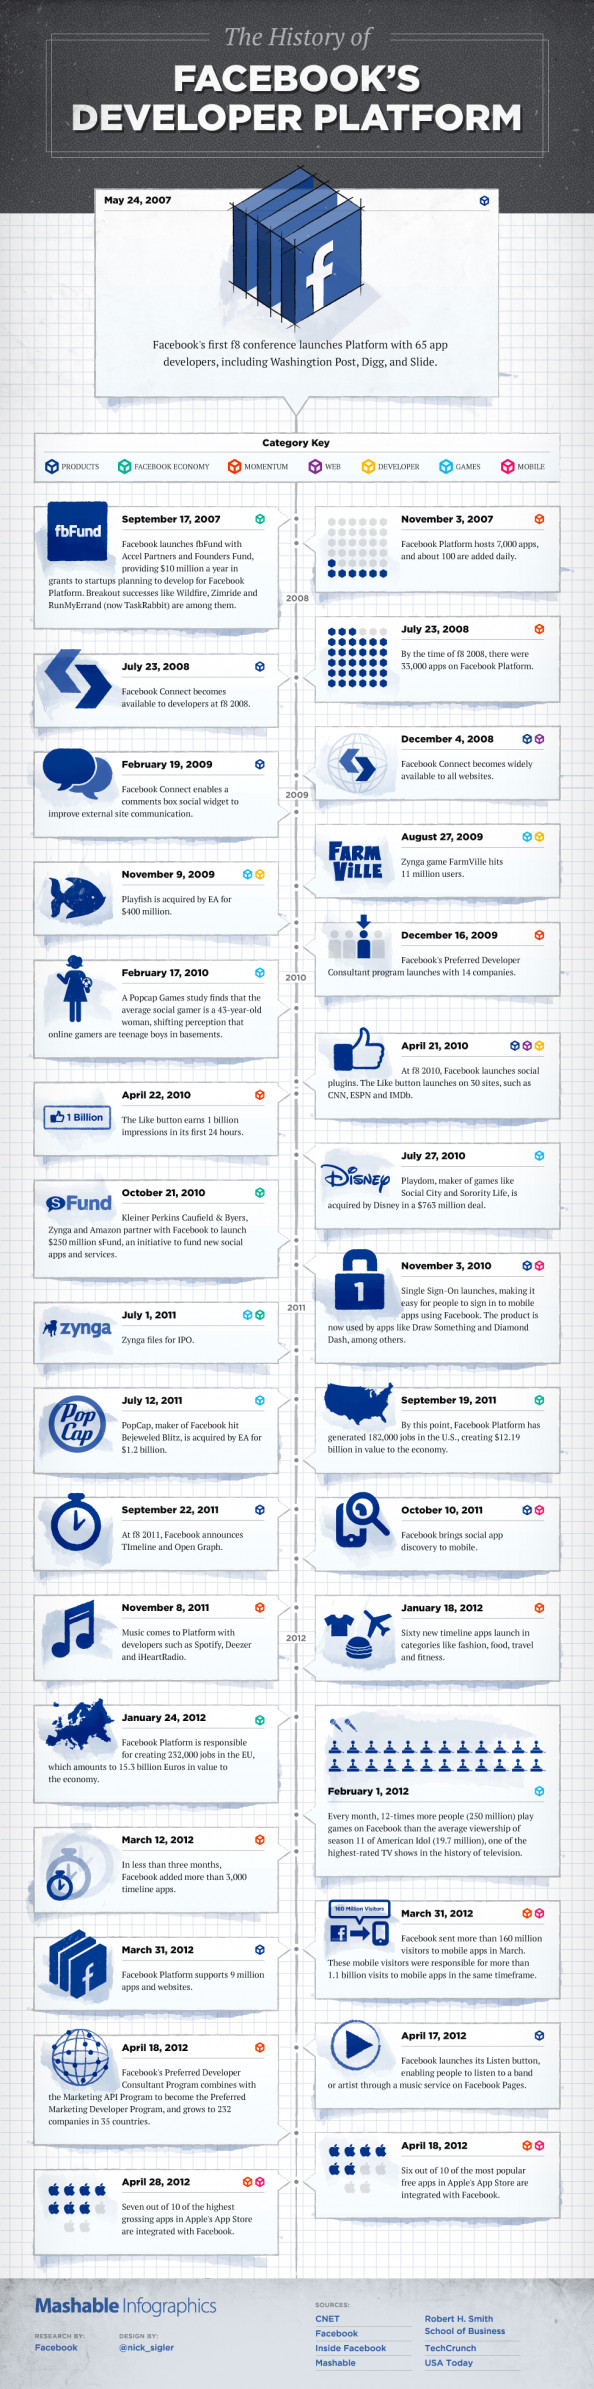 The History of Facebook's Developer Platform Infographic